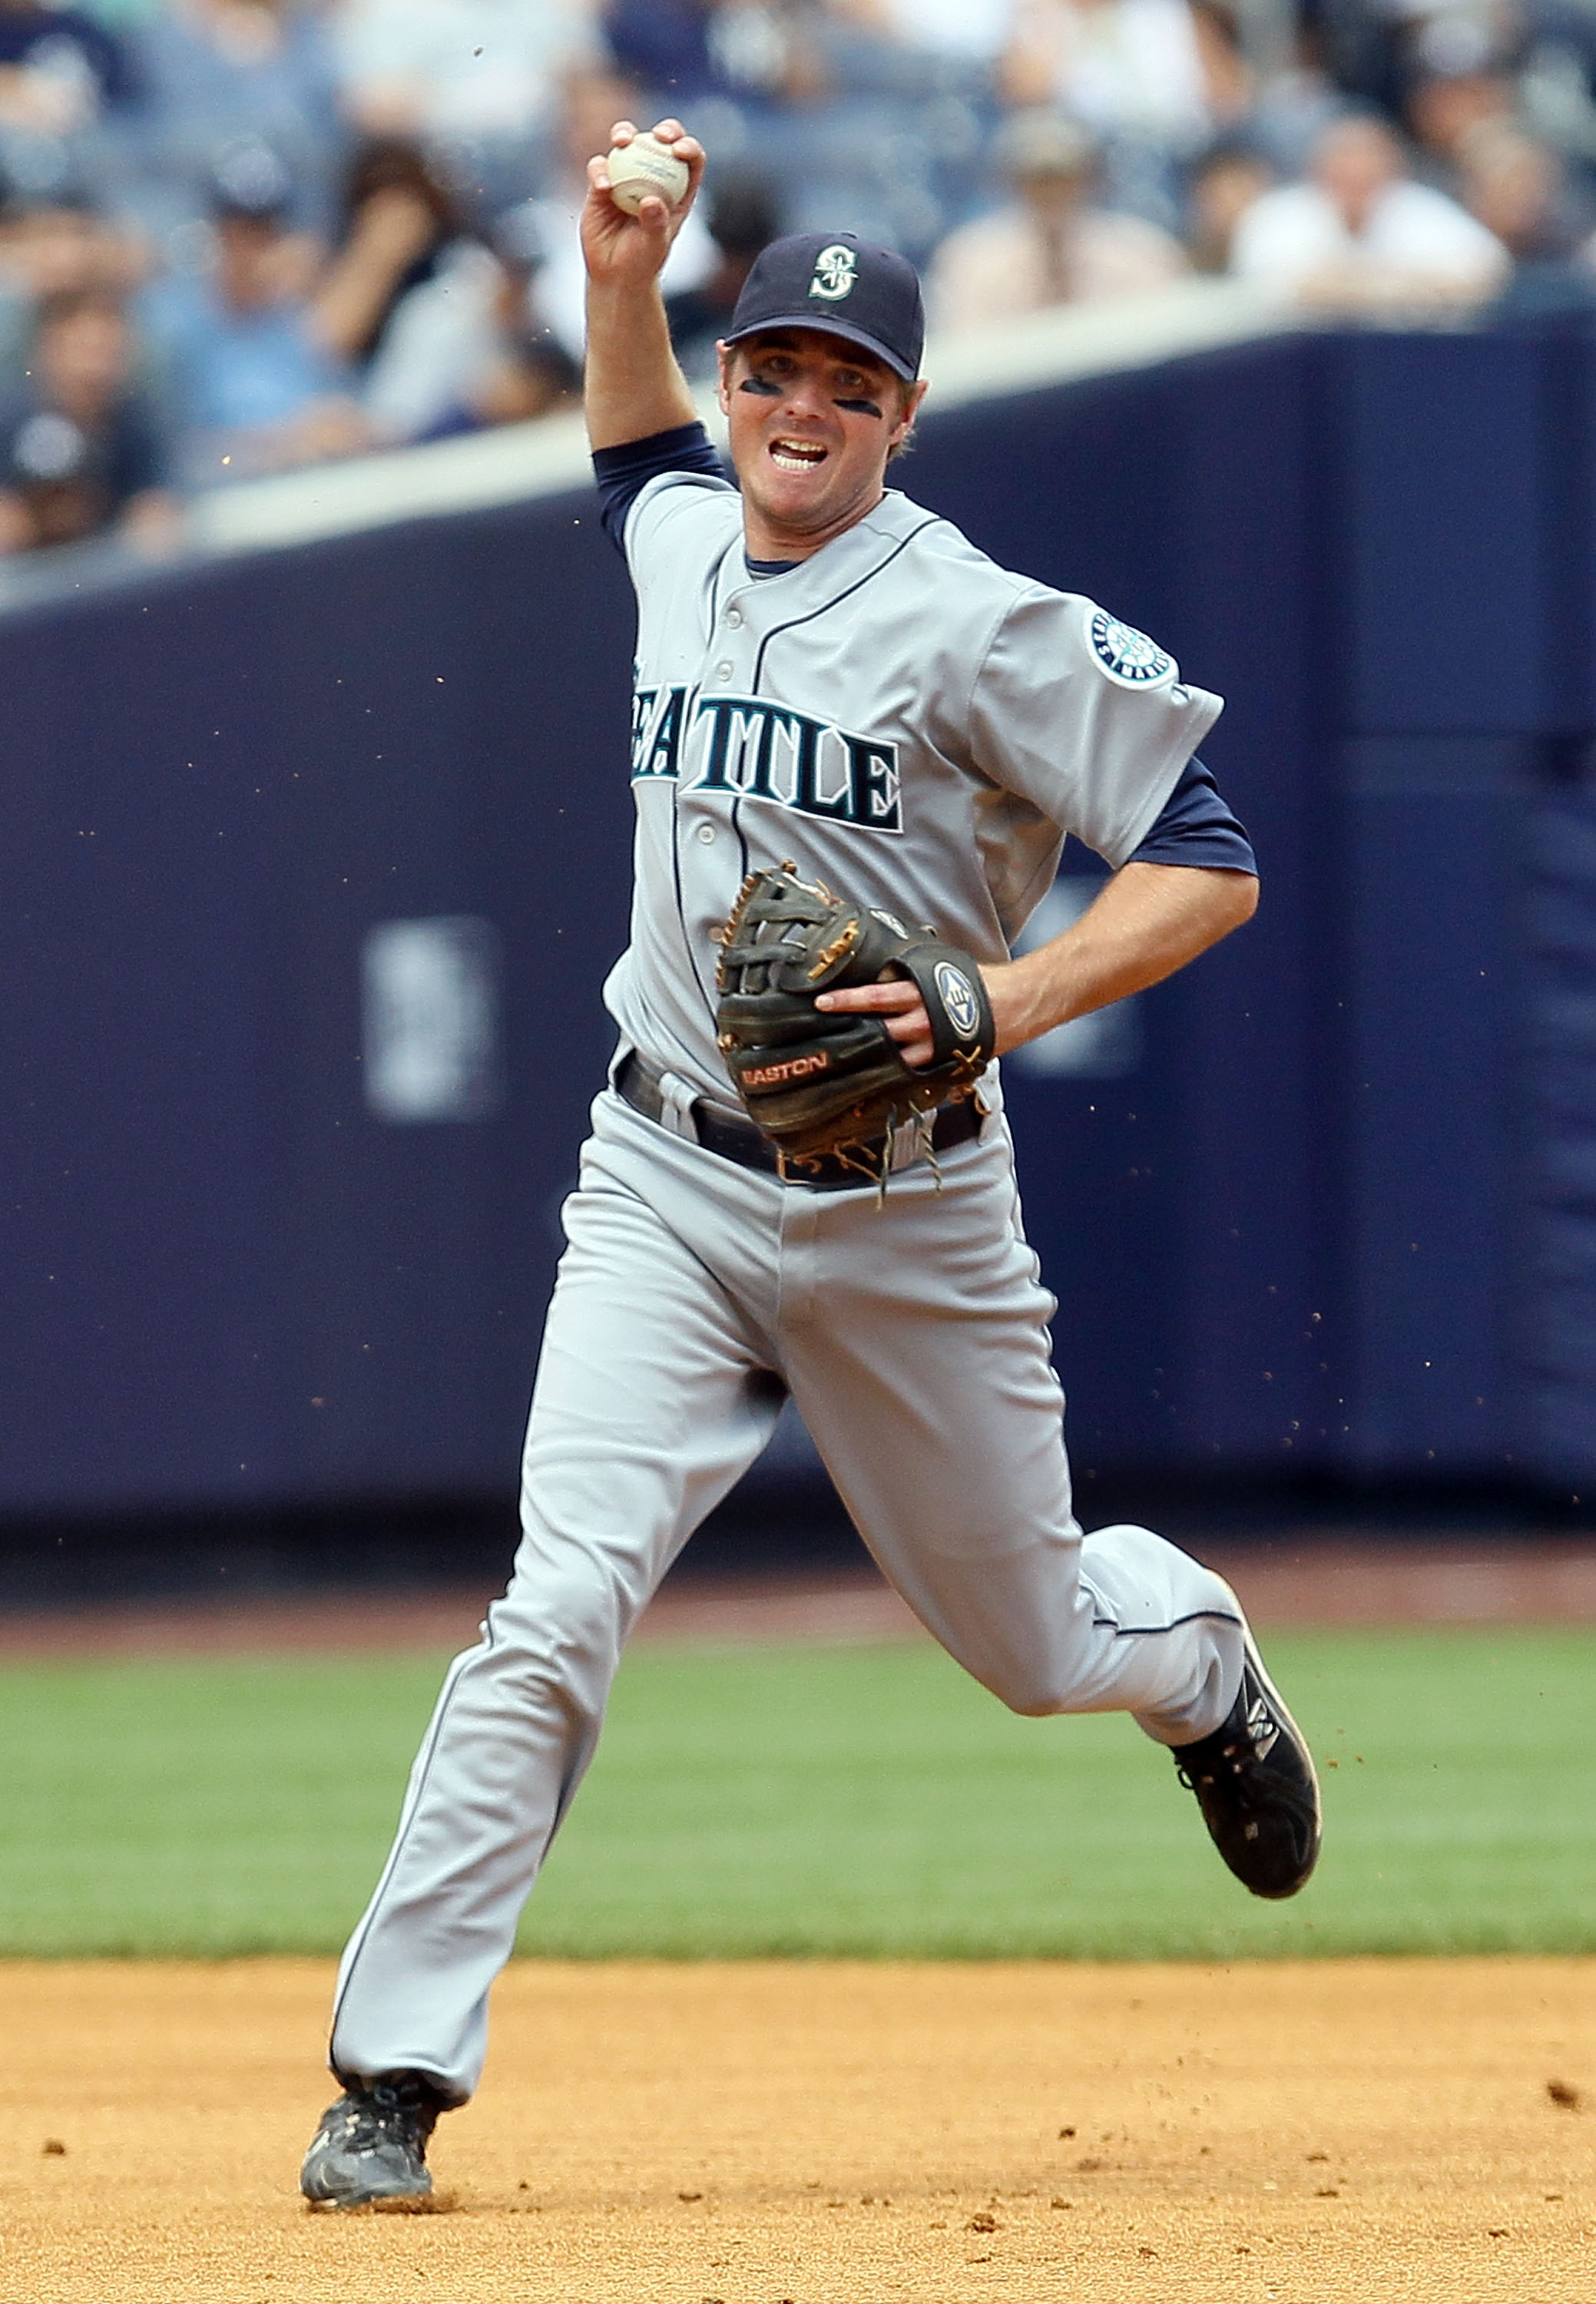 NEW YORK - JULY 01:  Josh Wilson #16 of the Seattle Mariners throws to first base for an out against Derek Jeter (not pictured) of the New York Yankees in the fifth inning on July 1, 2010 at Yankee Stadium in the Bronx borough of New York City.  (Photo by